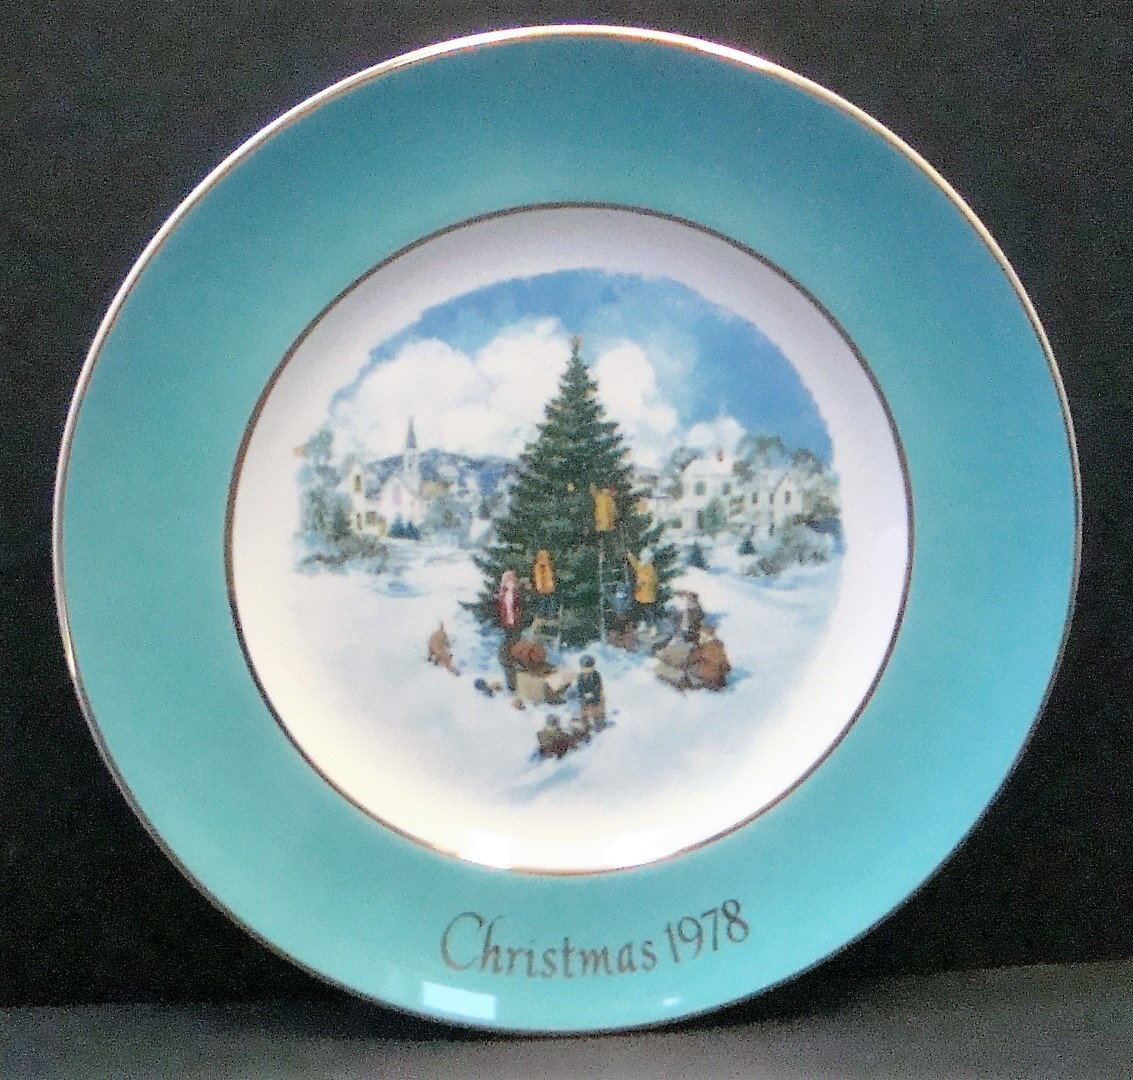 Avon Enoch Wedgwood Christmas 1978 Collectible Plate Trimming the Tree, no box